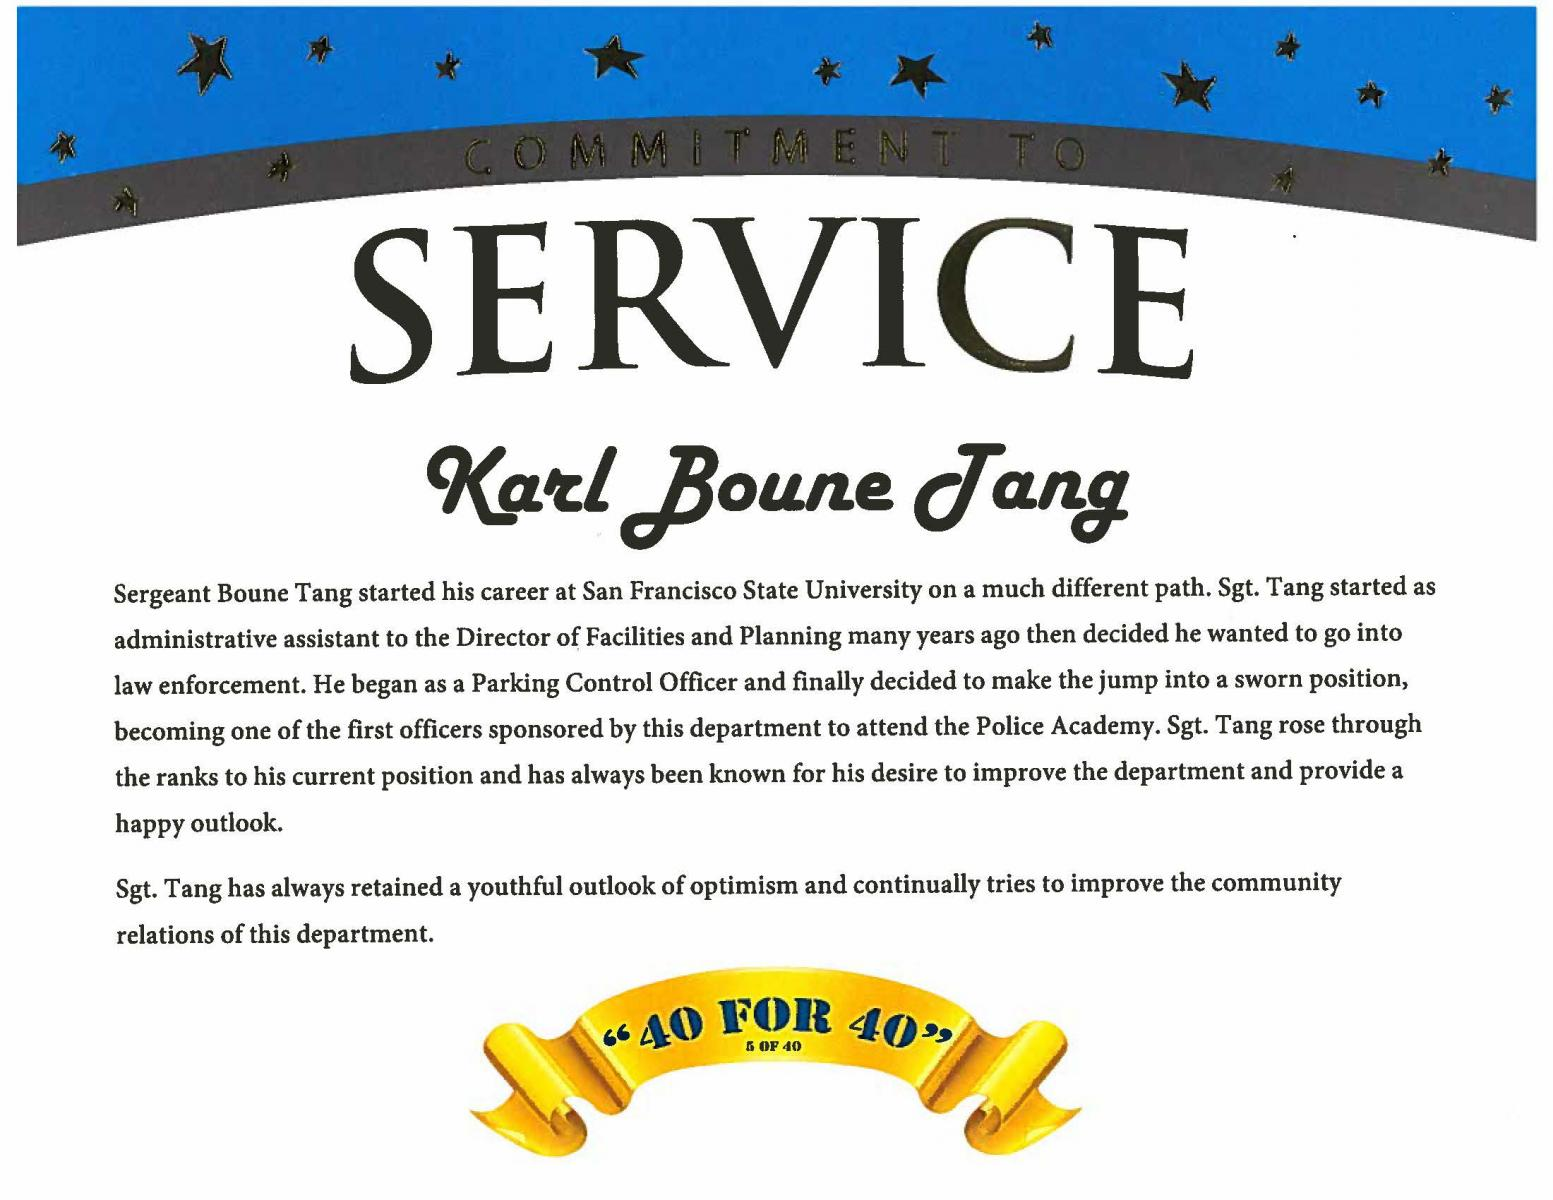 Service recognition award for Sgt. Tang